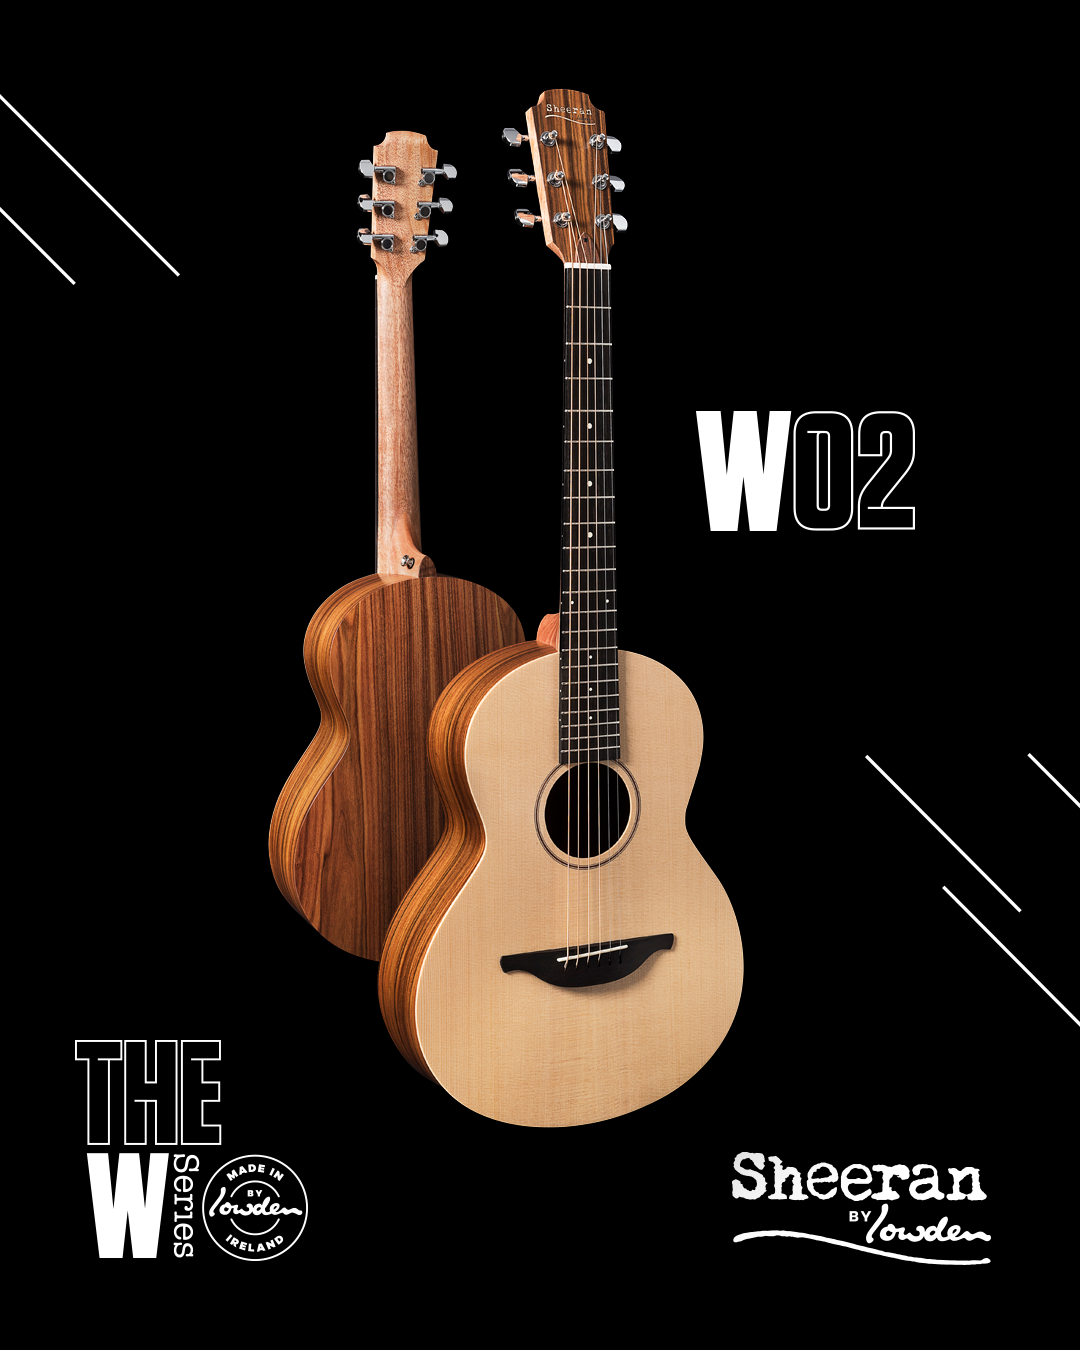 Sheeran by Lowden W-02 Sitka/Rosewood Guitar w/ LR Baggs Pickup (PRE ORDER)